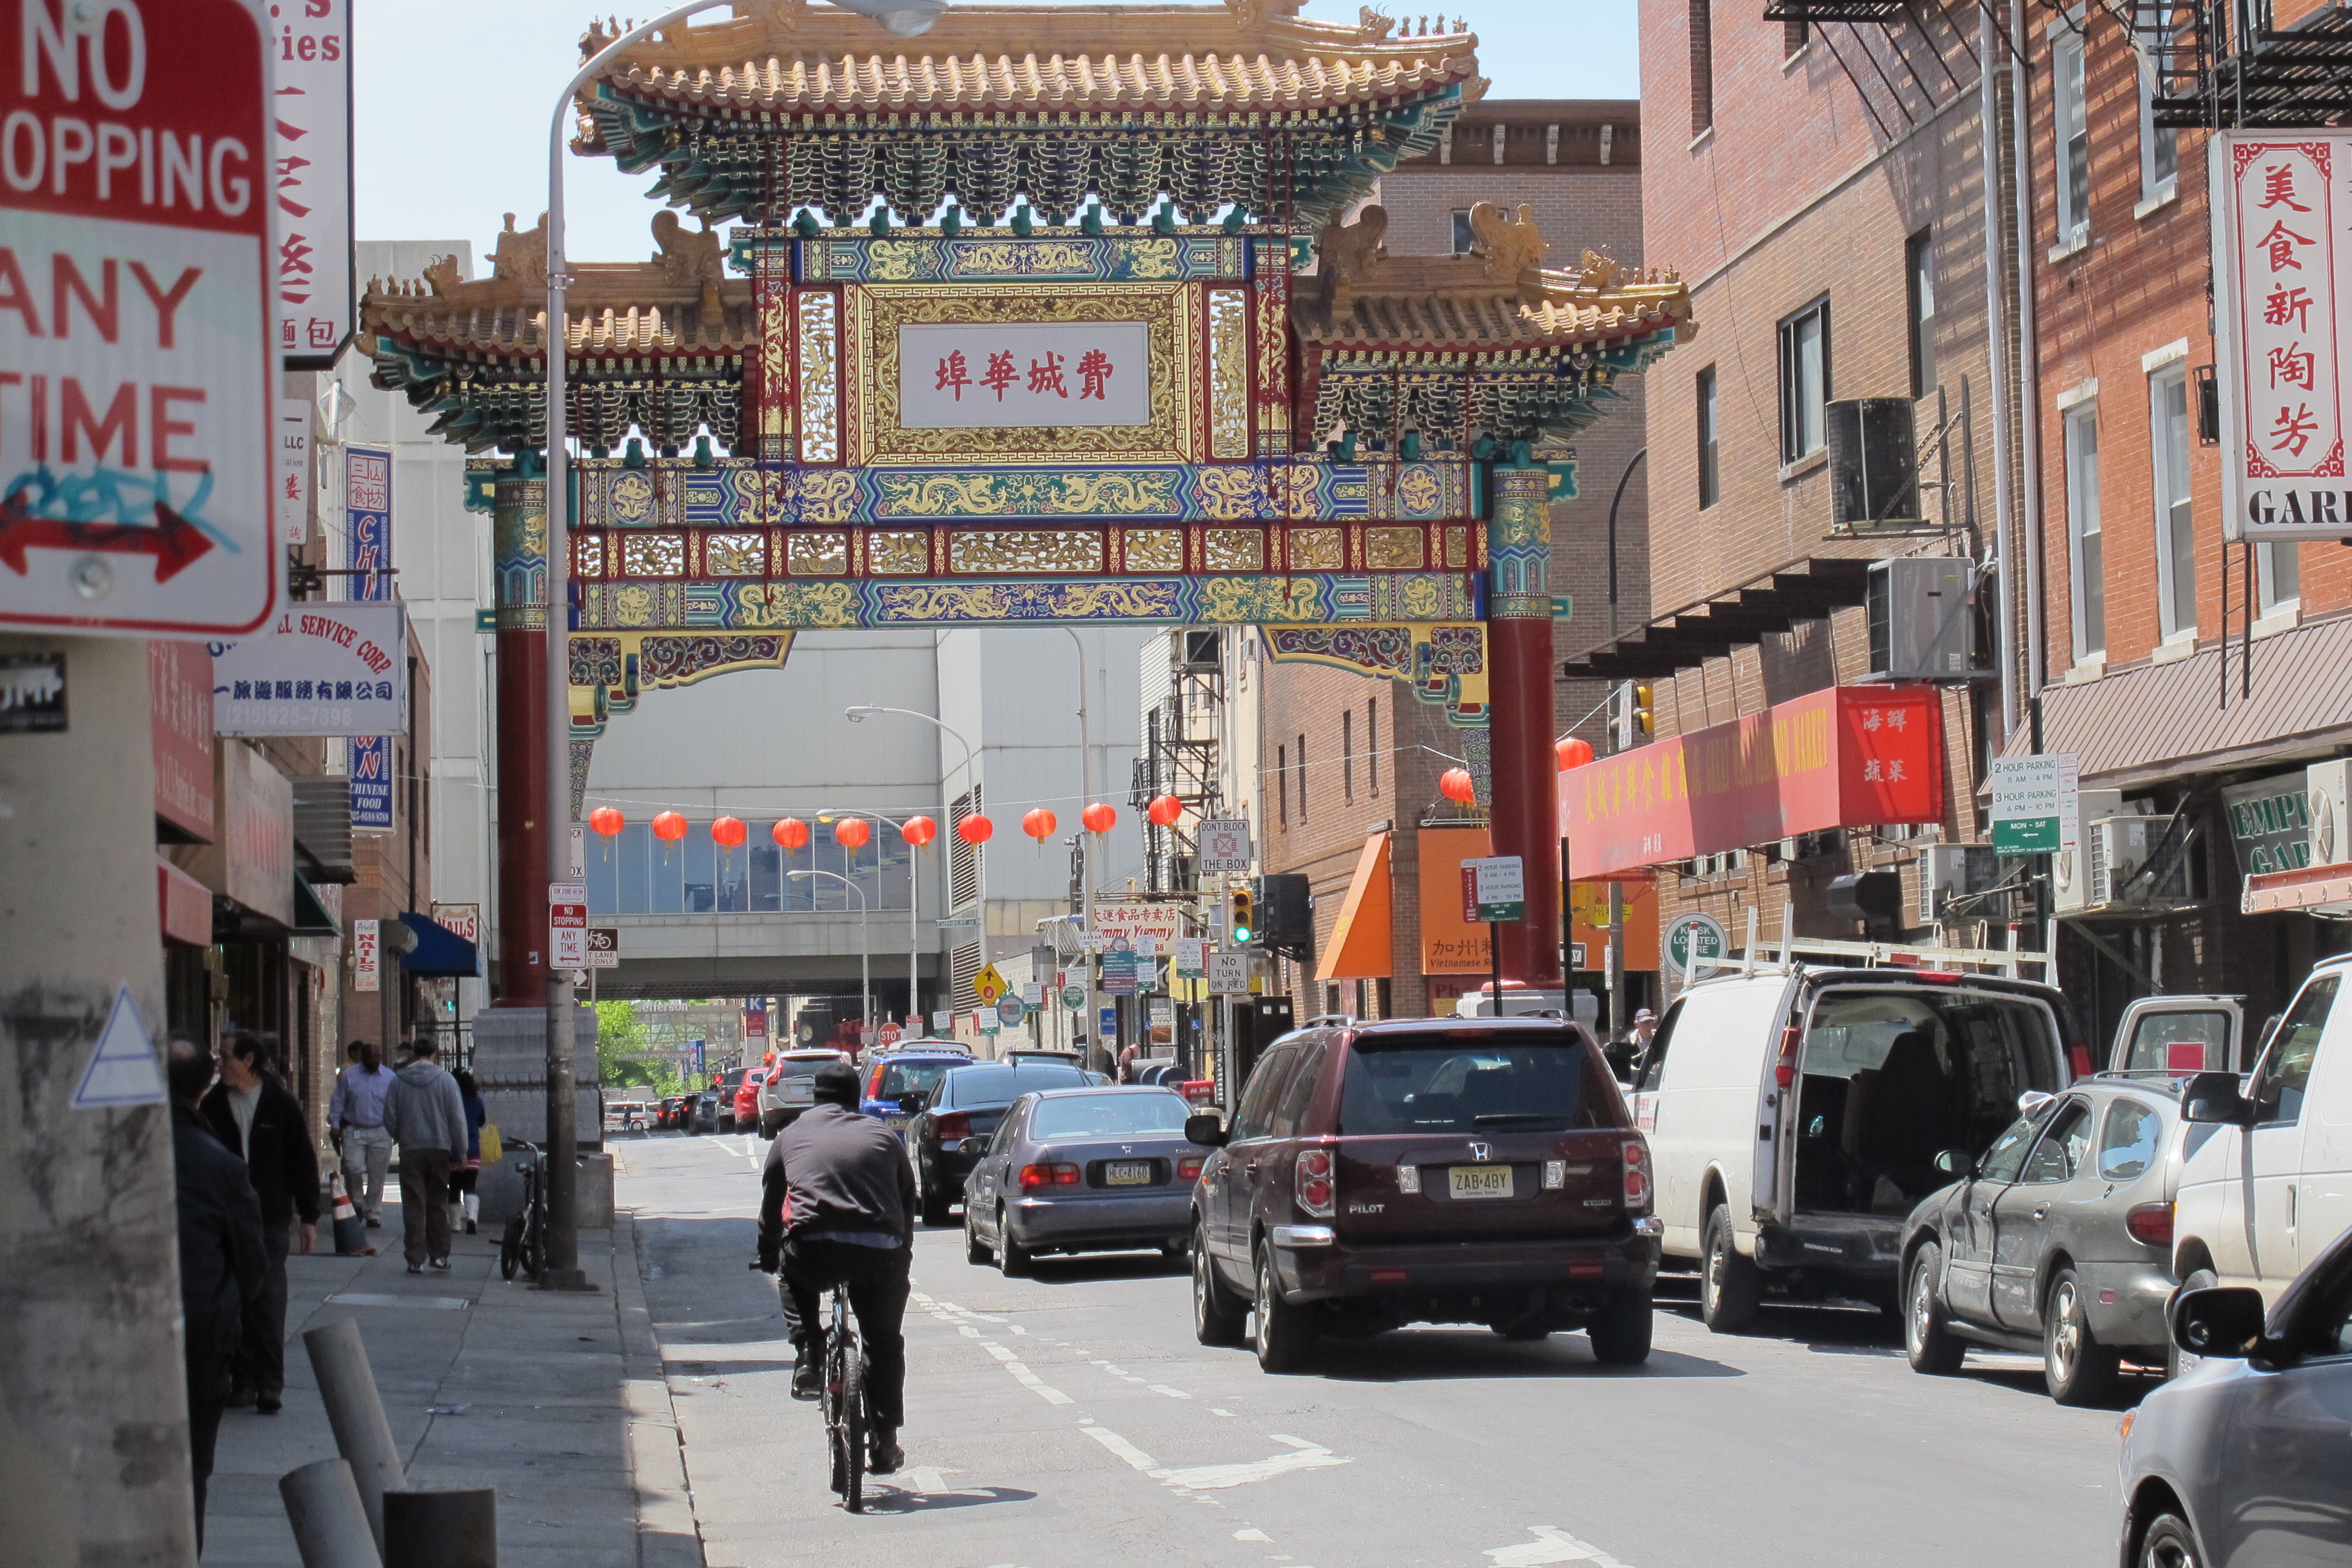 Testing out a bike lane pilot project on 10th Street in Chinatown.